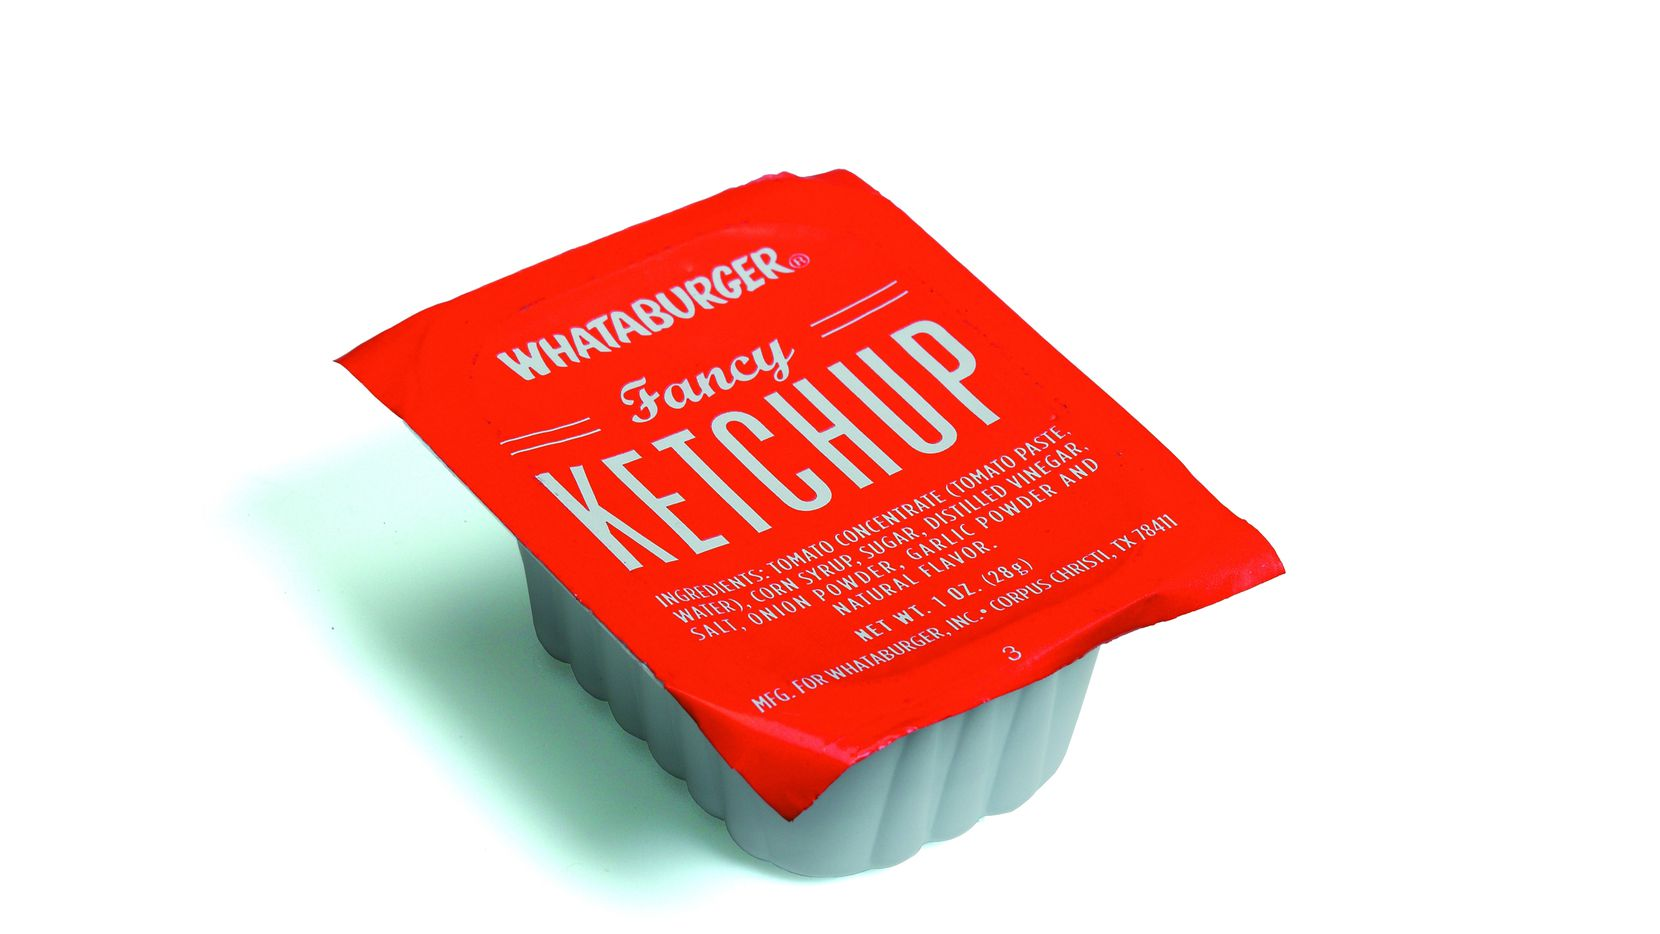 Whataburger's Fancy Ketchup was introduced in one-ounce tubs in 1985.